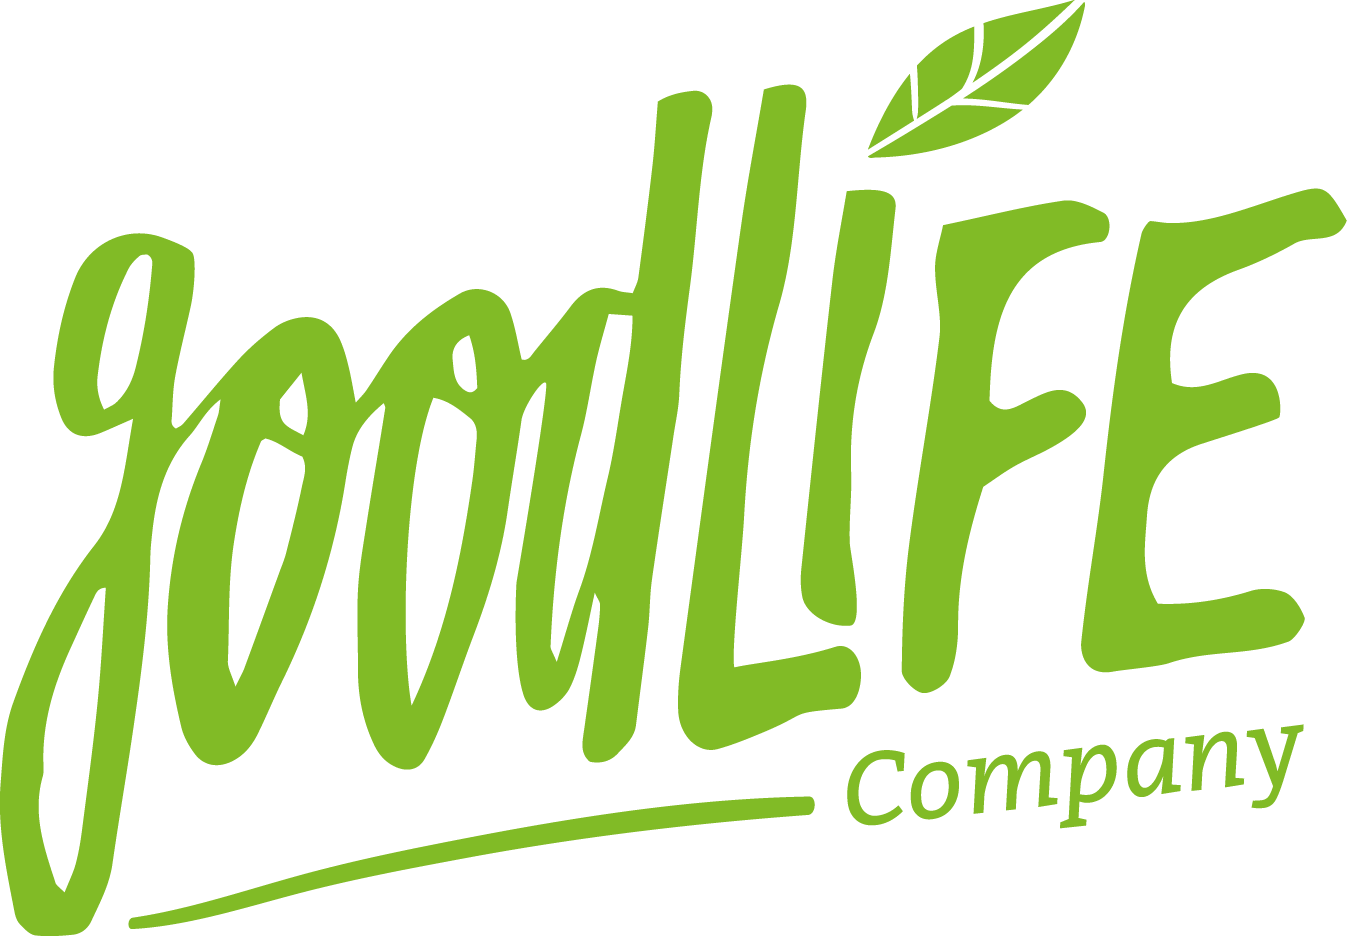 Goodlife Company